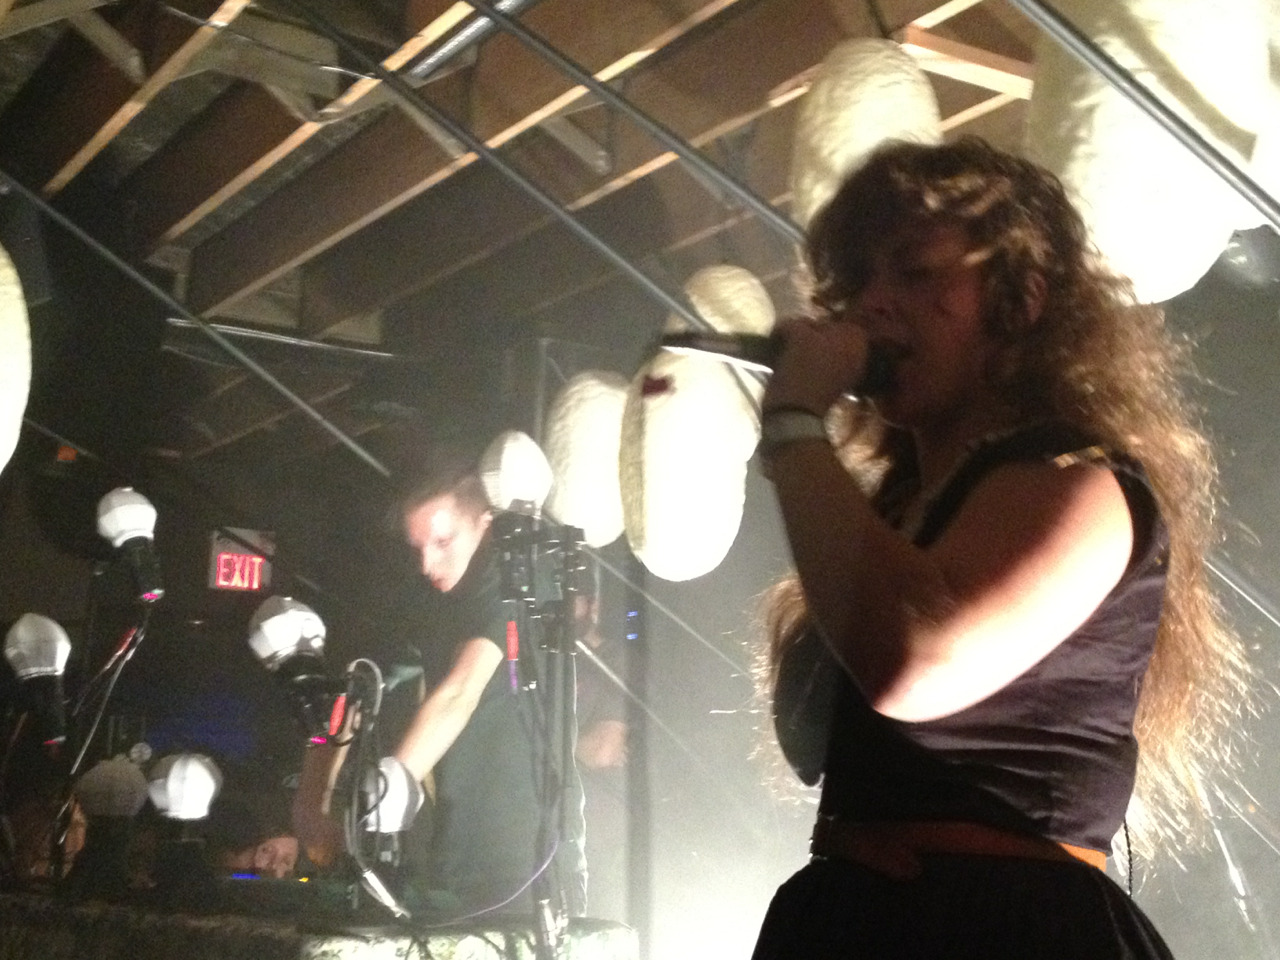 I can't even described to you how amazing Purity Ring was last night, it was a spectacular performance on all levels.